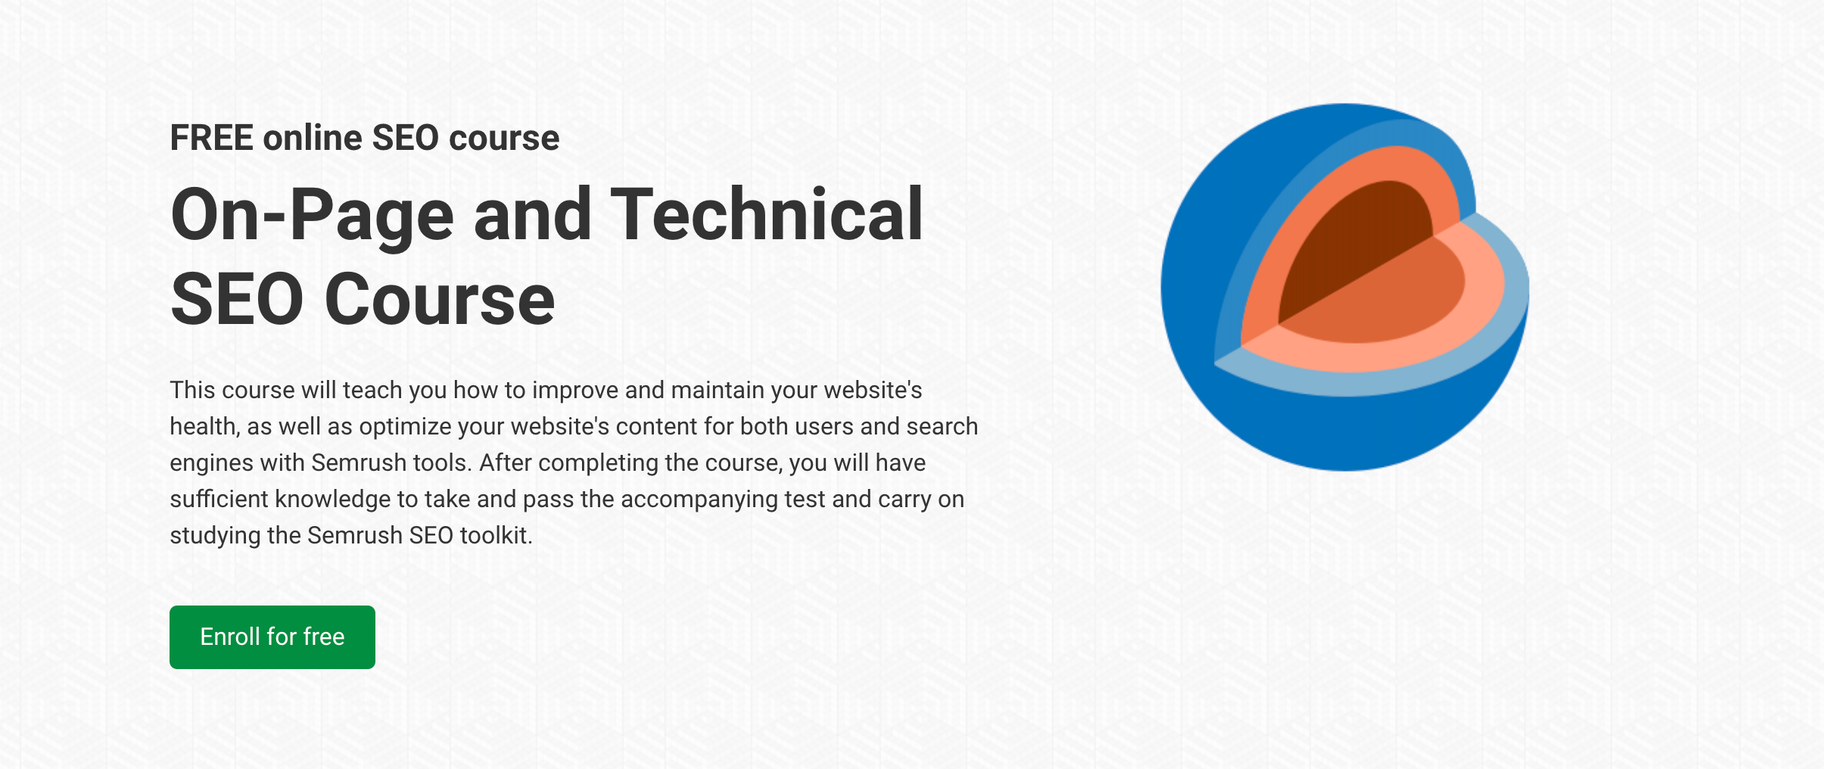 SEMrush's On-Page and Technical SEO Course